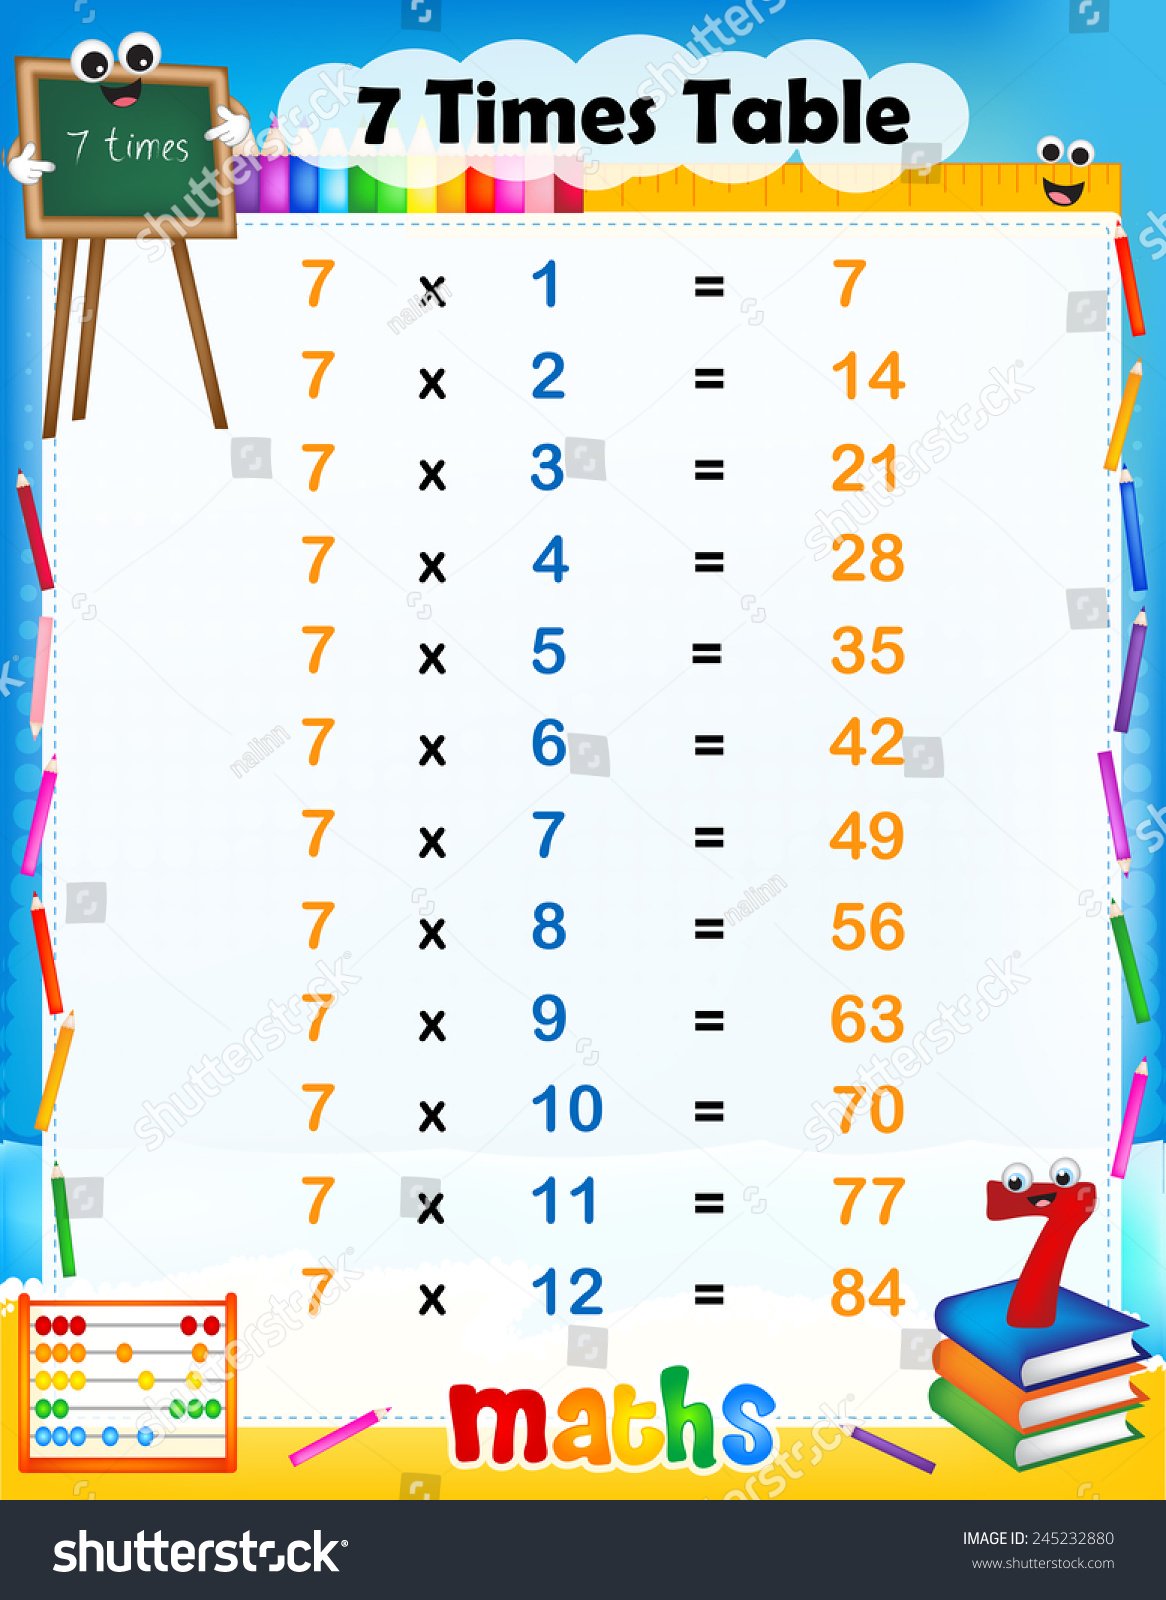 Illustration Of A Cute And Colorful Mathematical Times Table With Answers 7 Times Table